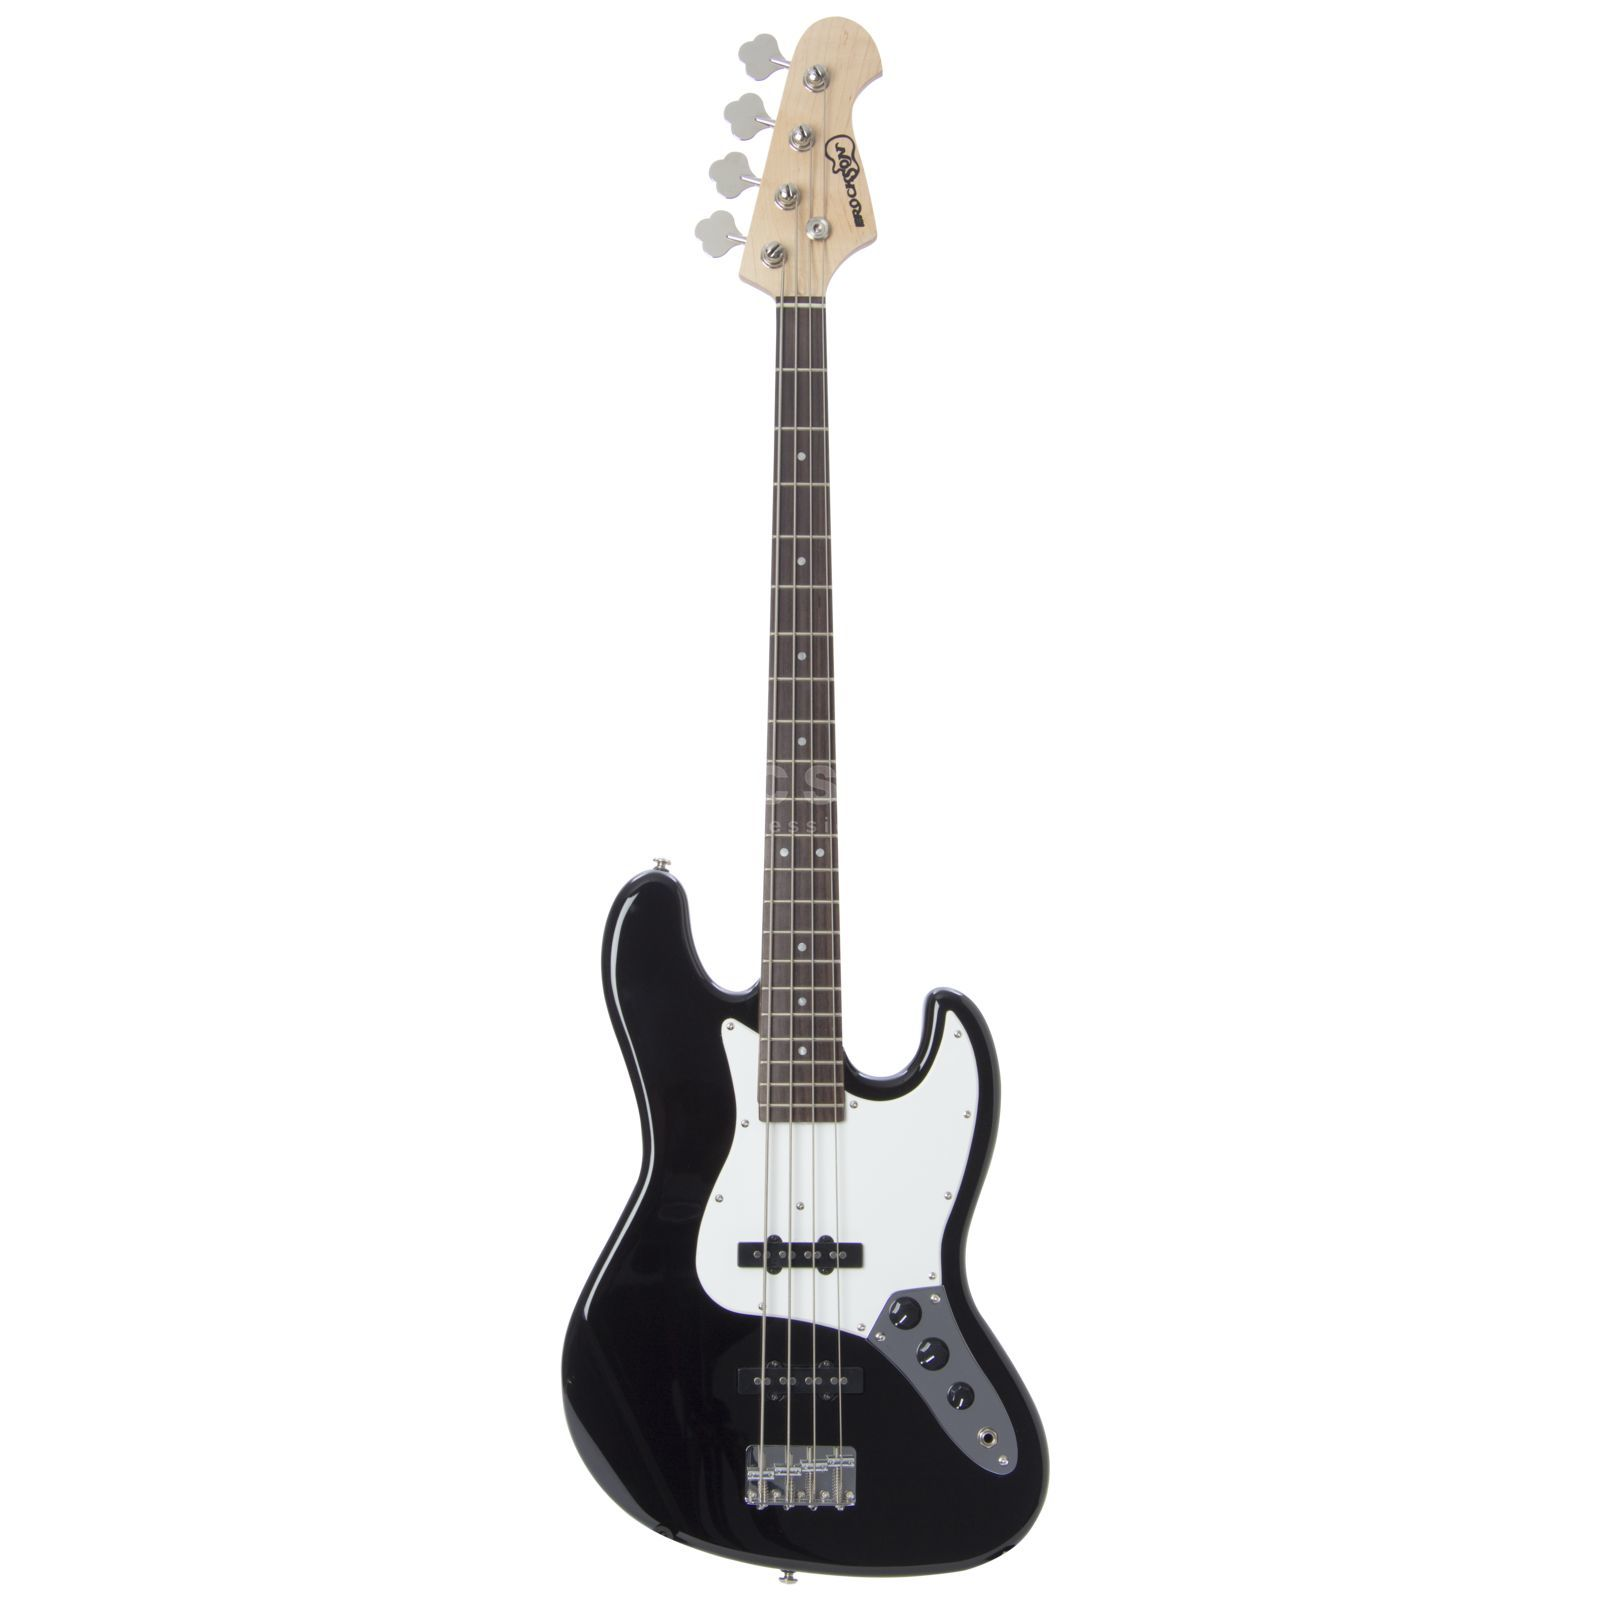 Rockson R-JB99 BK 4-String E-Bass Guitar, Black High gloss Zdjęcie produktu